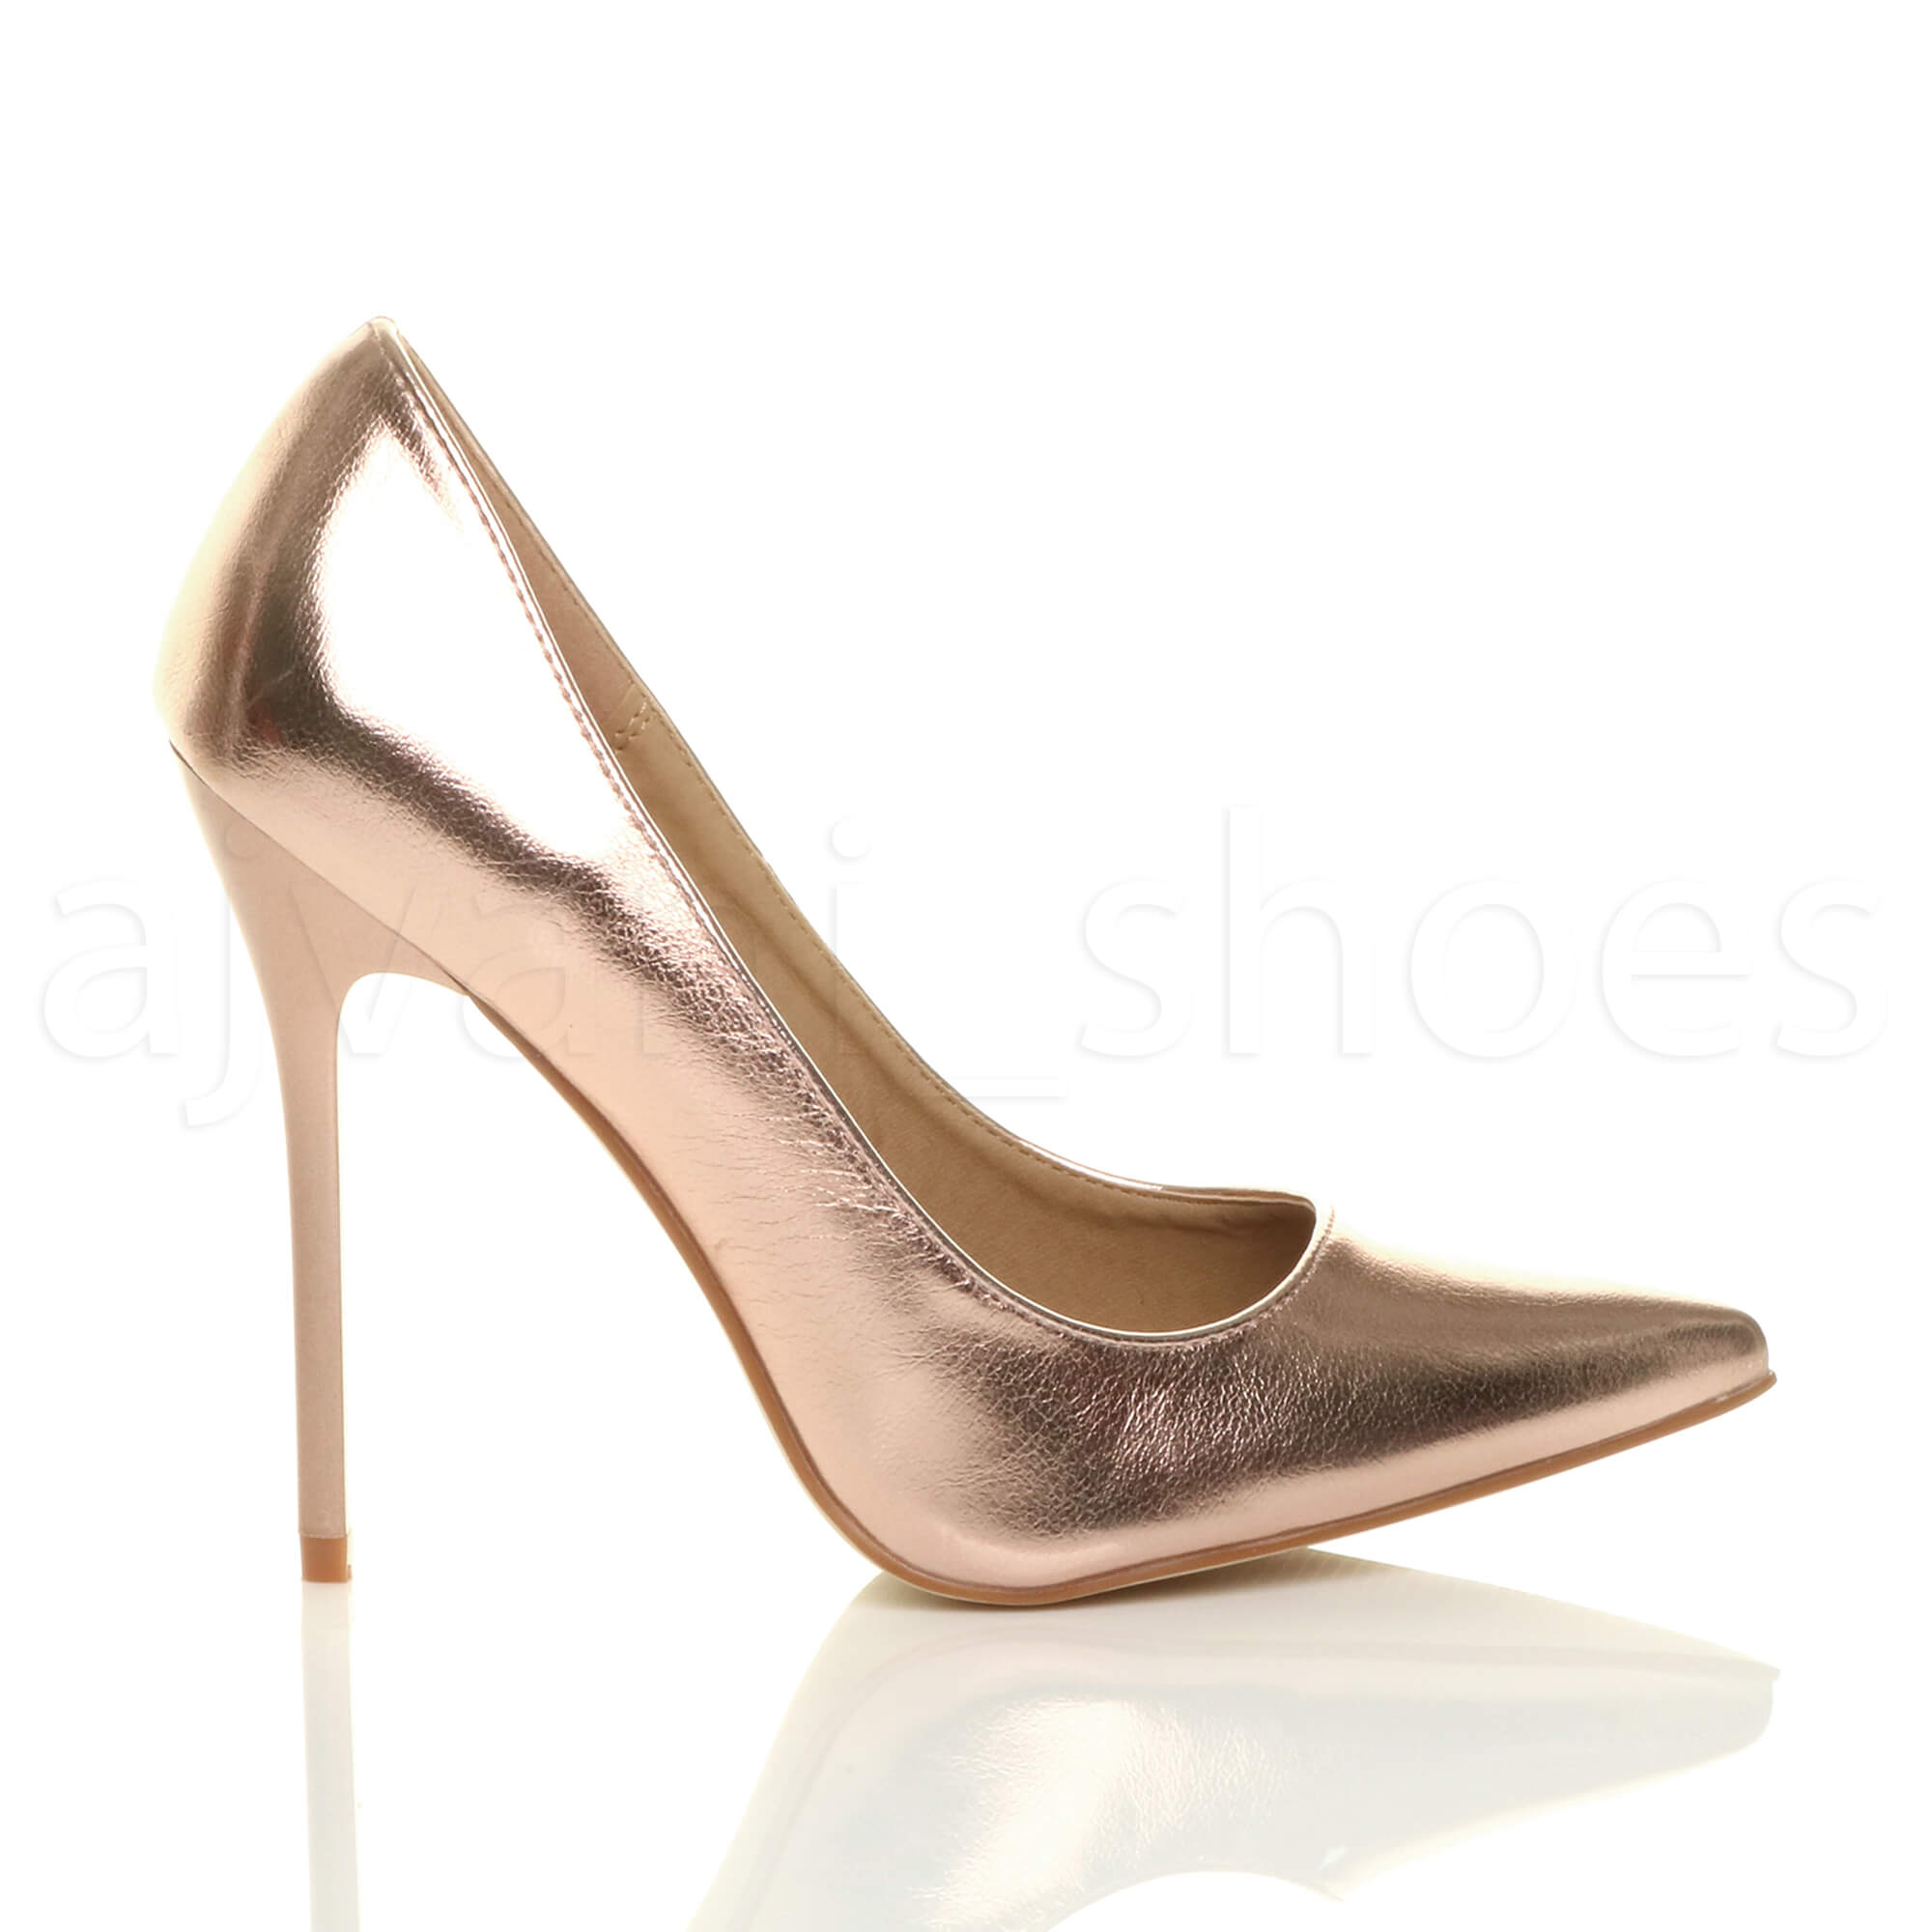 WOMENS-LADIES-HIGH-HEEL-POINTED-CONTRAST-COURT-SMART-PARTY-WORK-SHOES-PUMPS-SIZE thumbnail 193